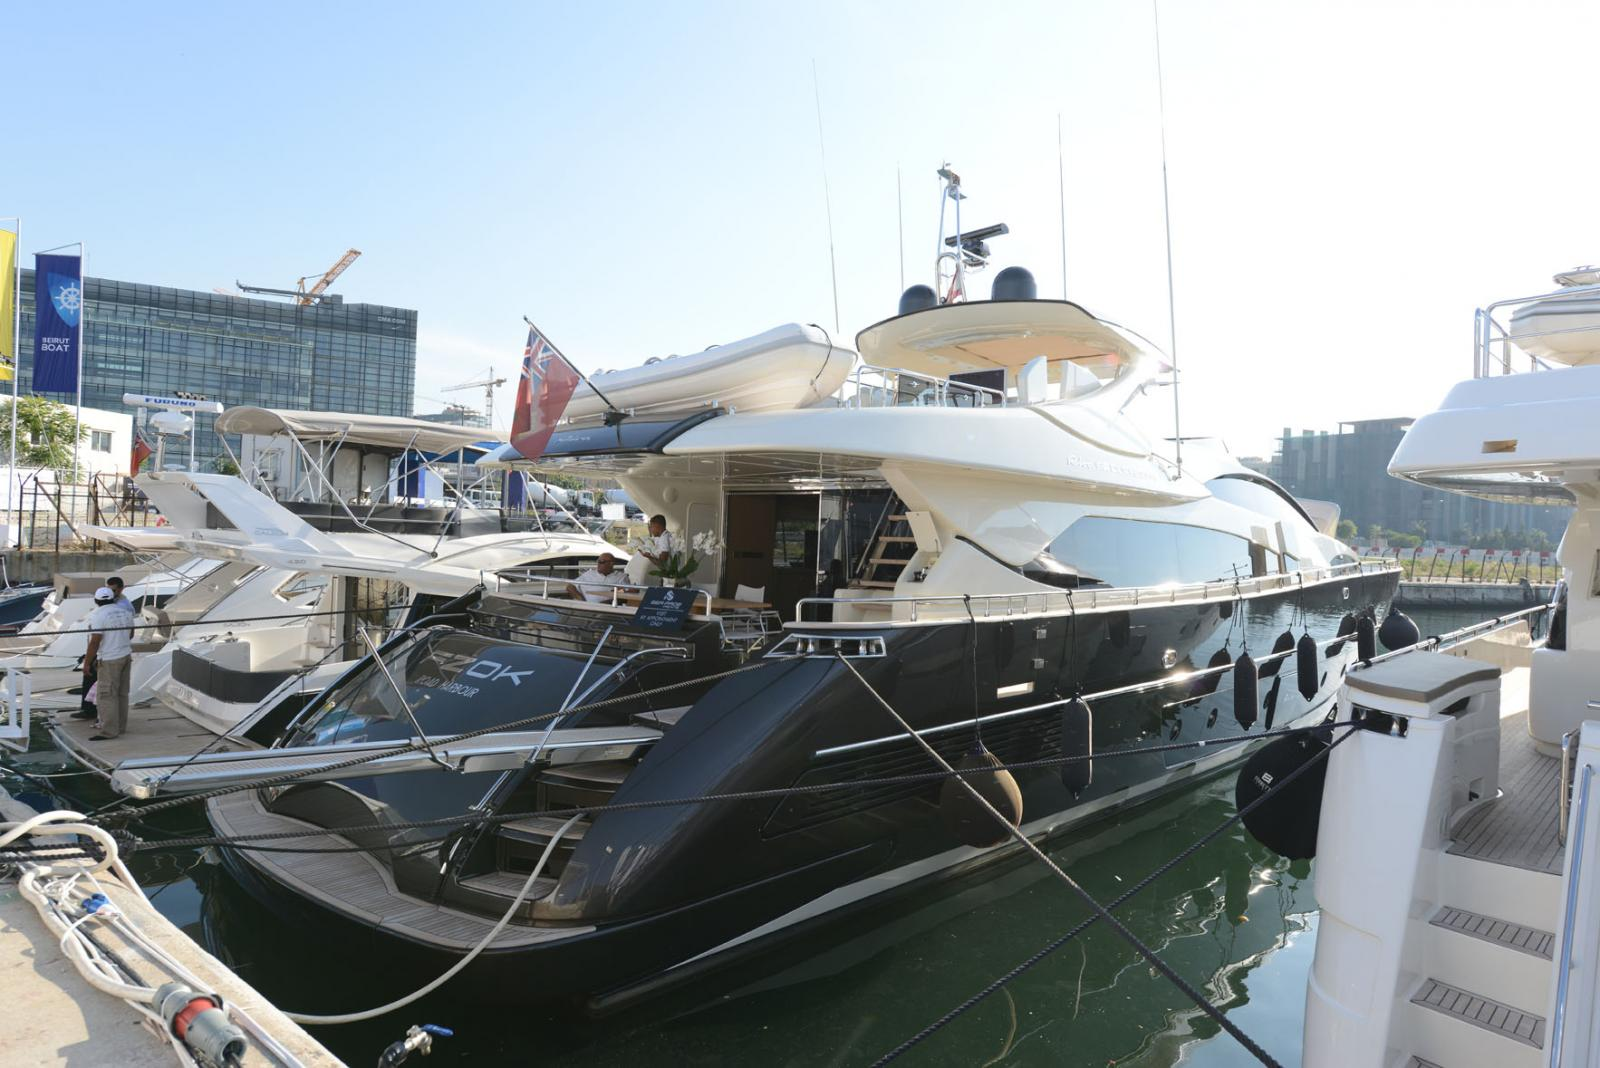 Phoenician Boat is the Official Dogital Media for Beirut Boat Show